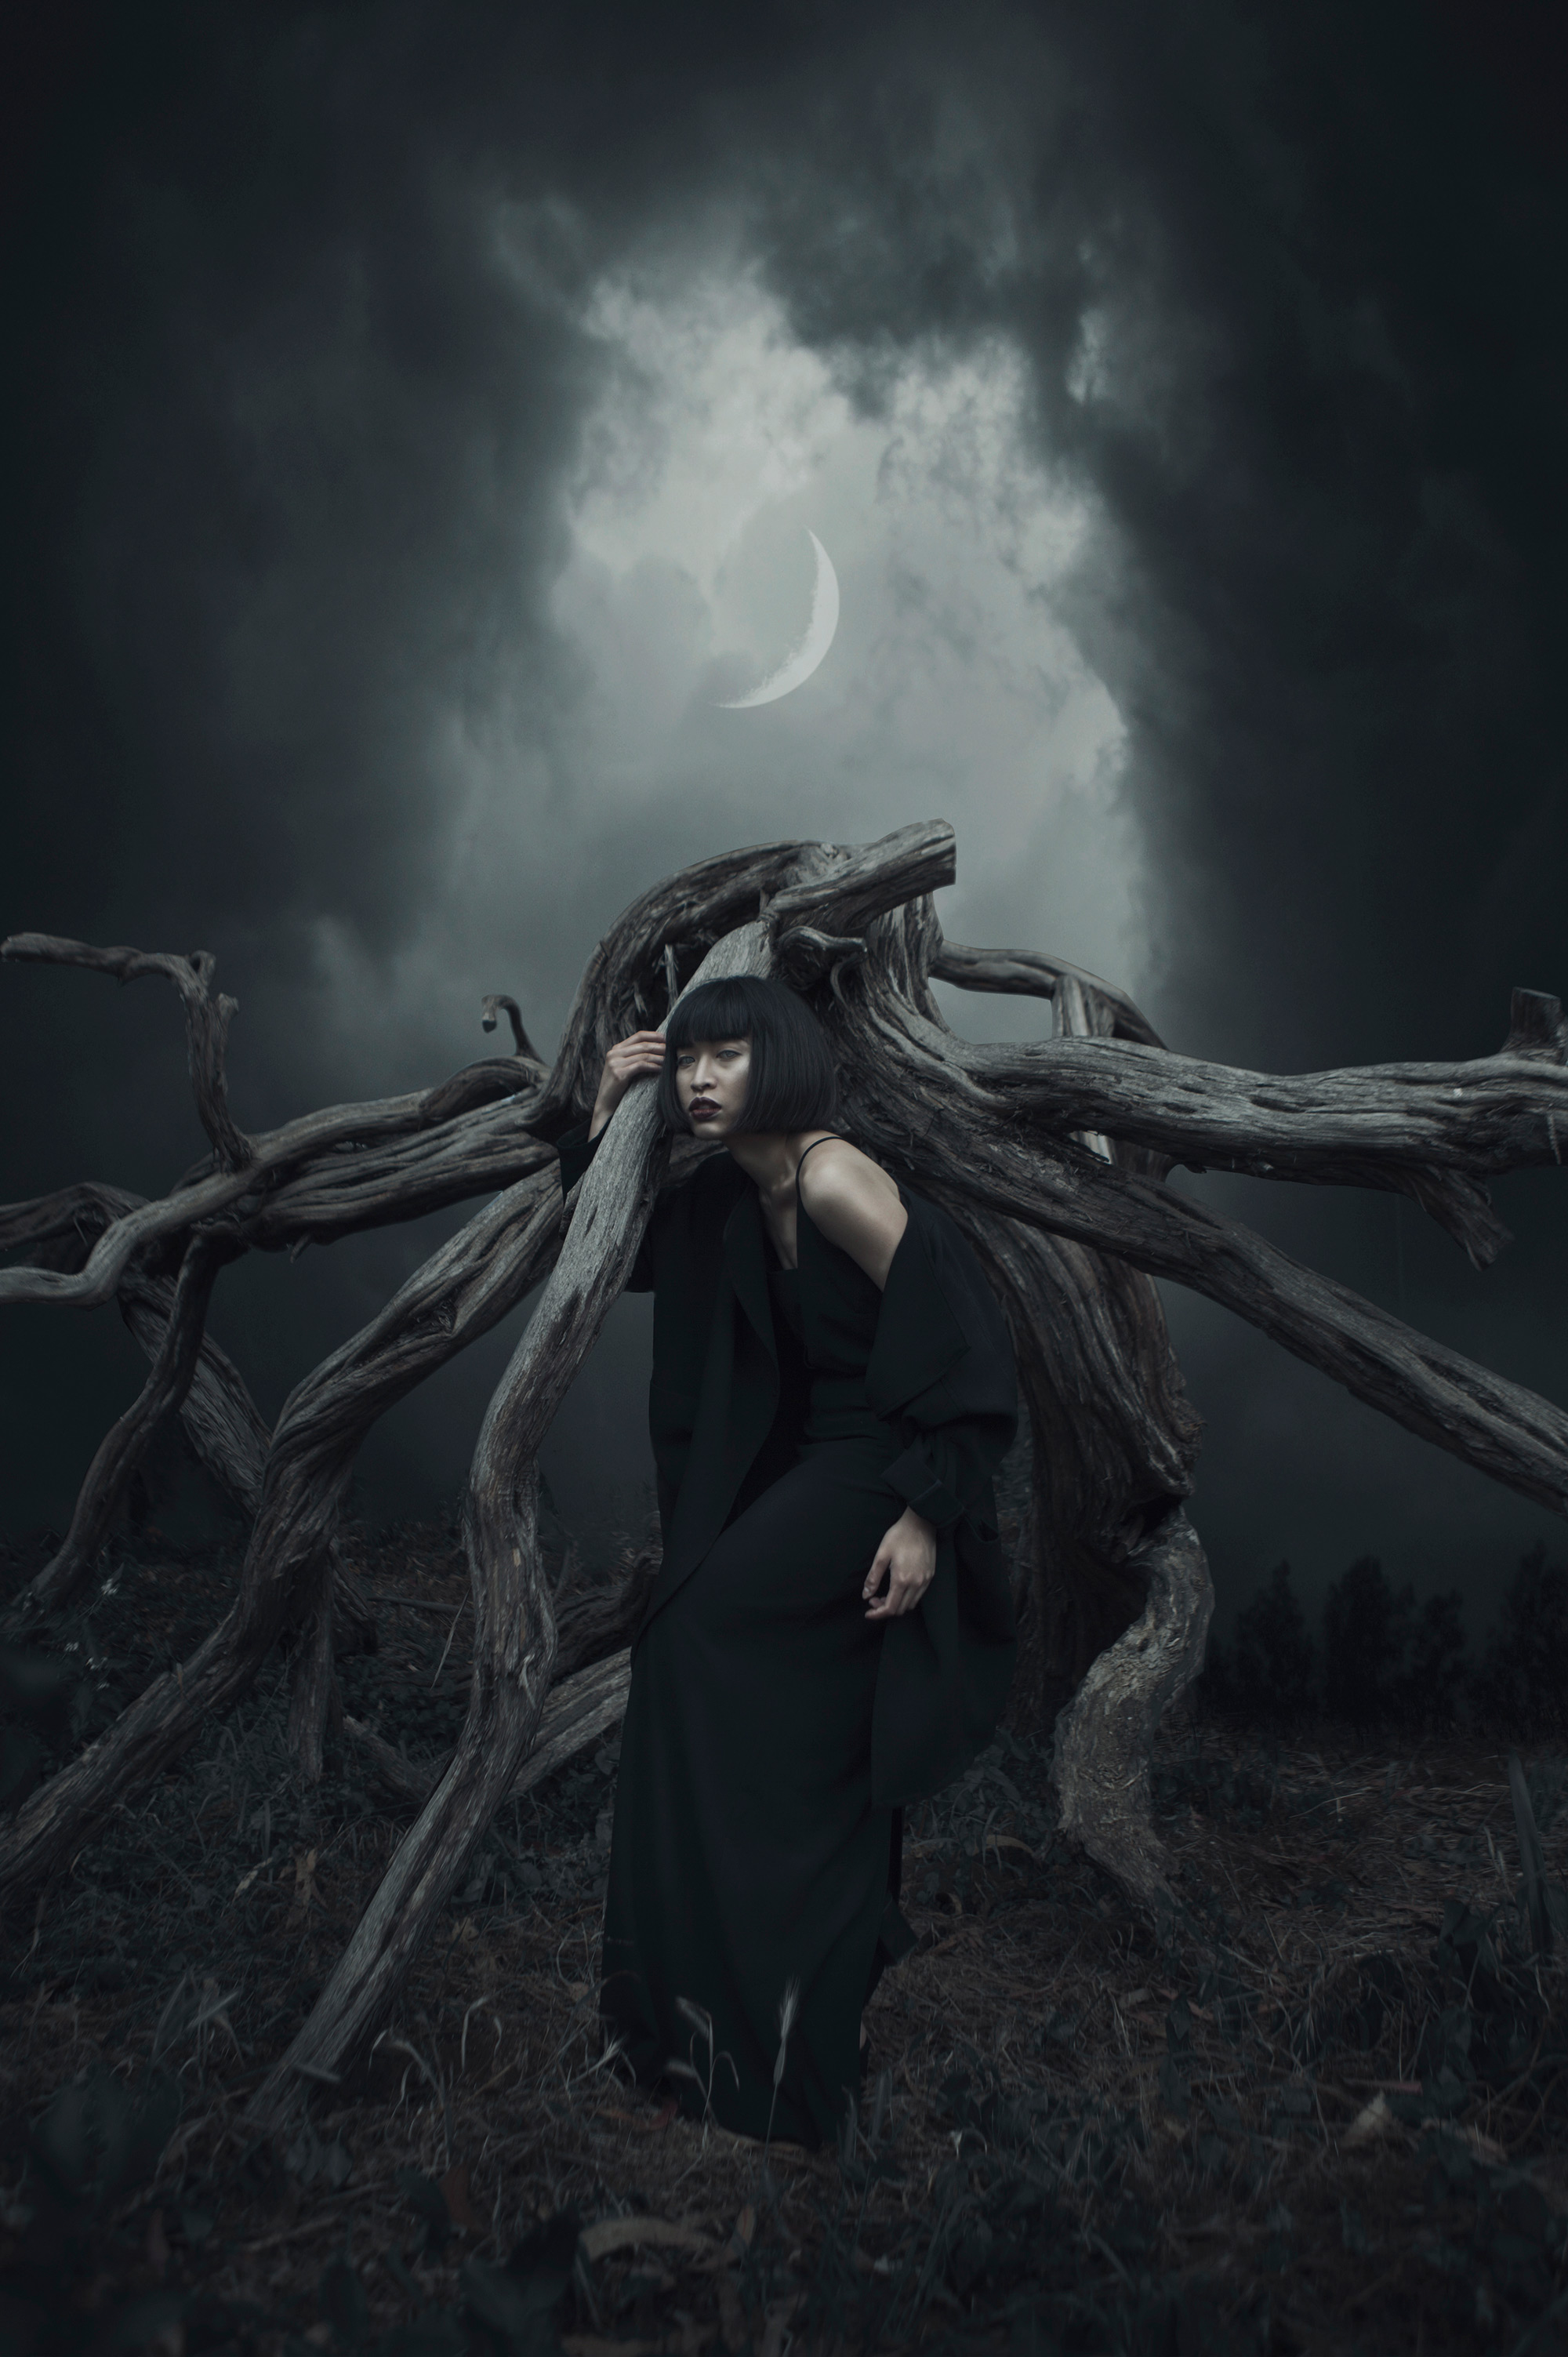 Clouded Eyes and Dark Horizons: Photography by Karina Boissonnier